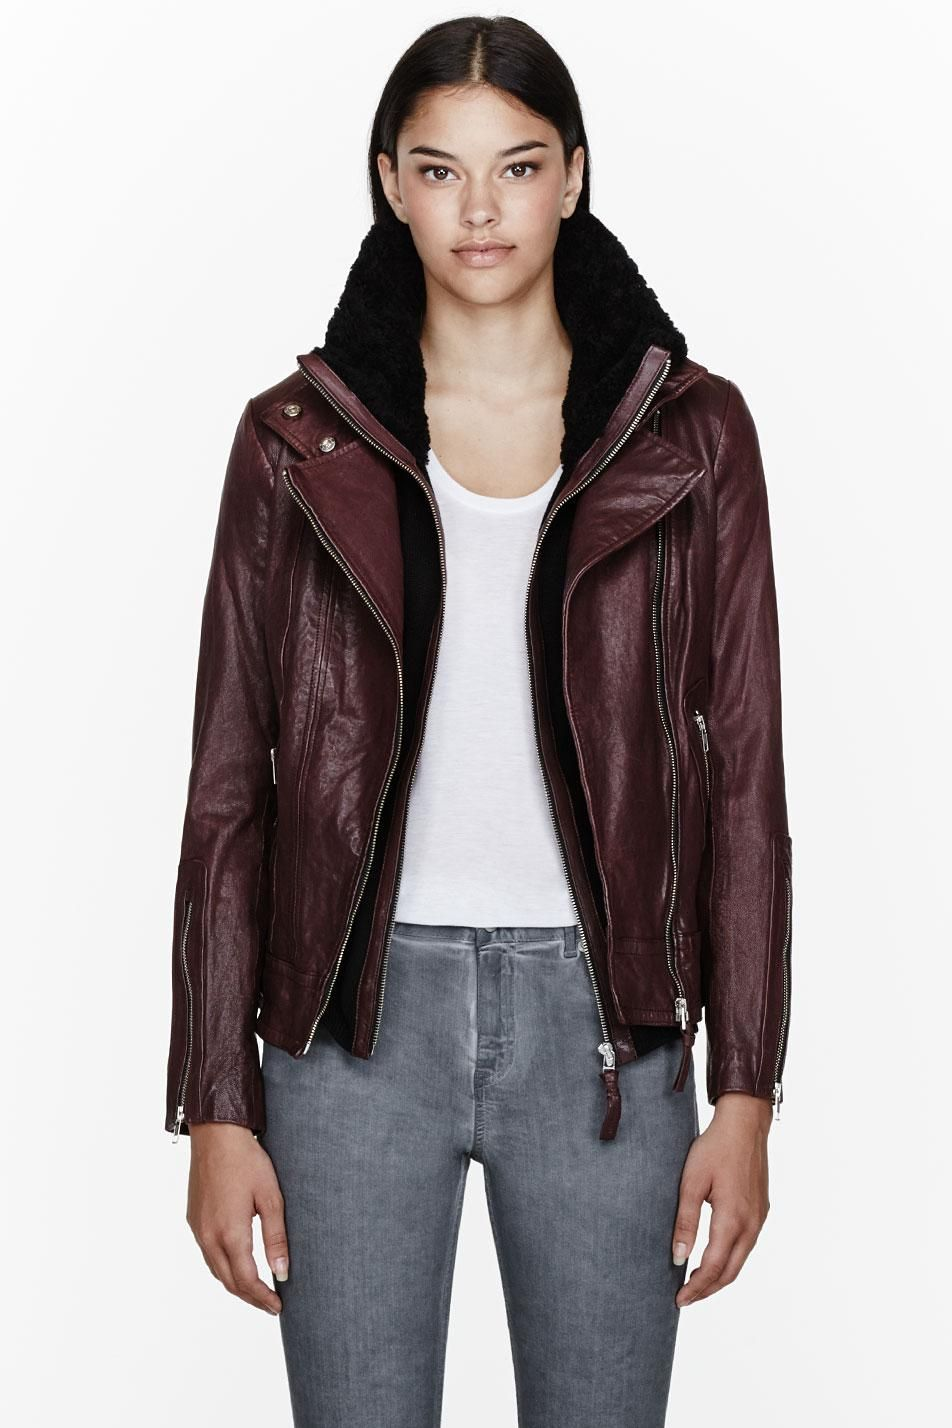 Mackage Burgundy Leather Layered Veruca Jacket (With